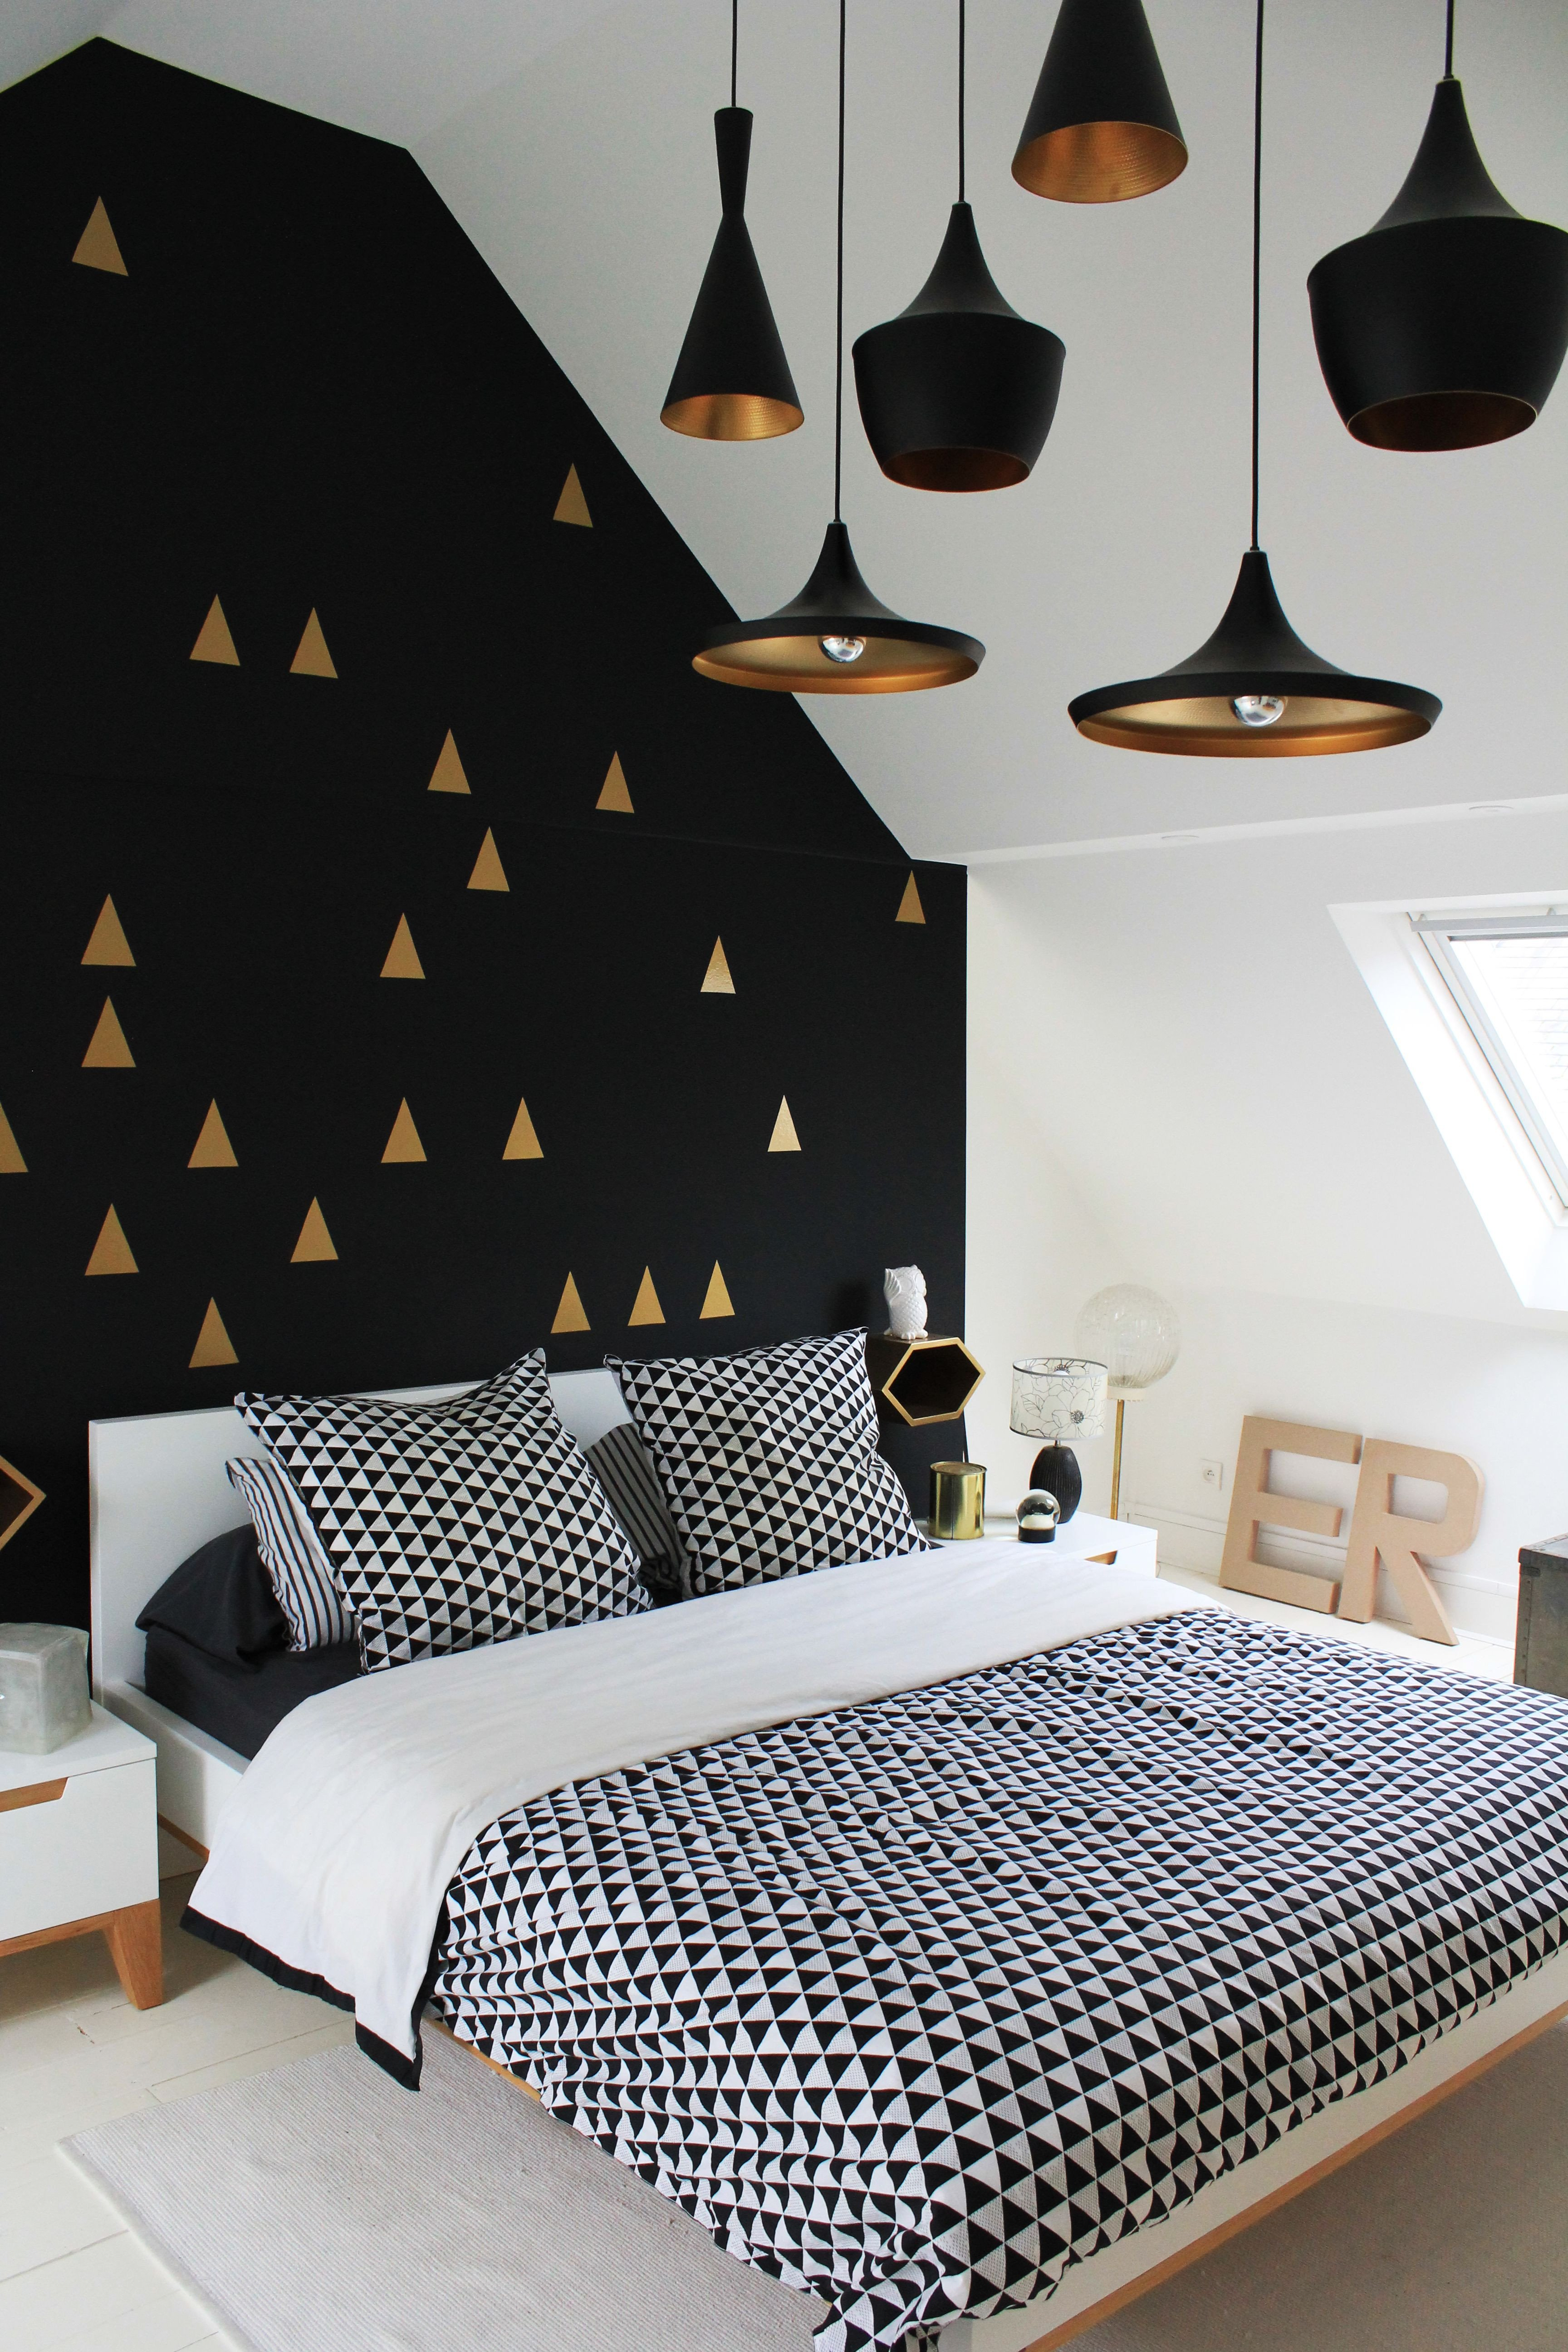 Black White and Gold Bedroom Awesome Bedroom White Gold and Black Interior Love the Wall and